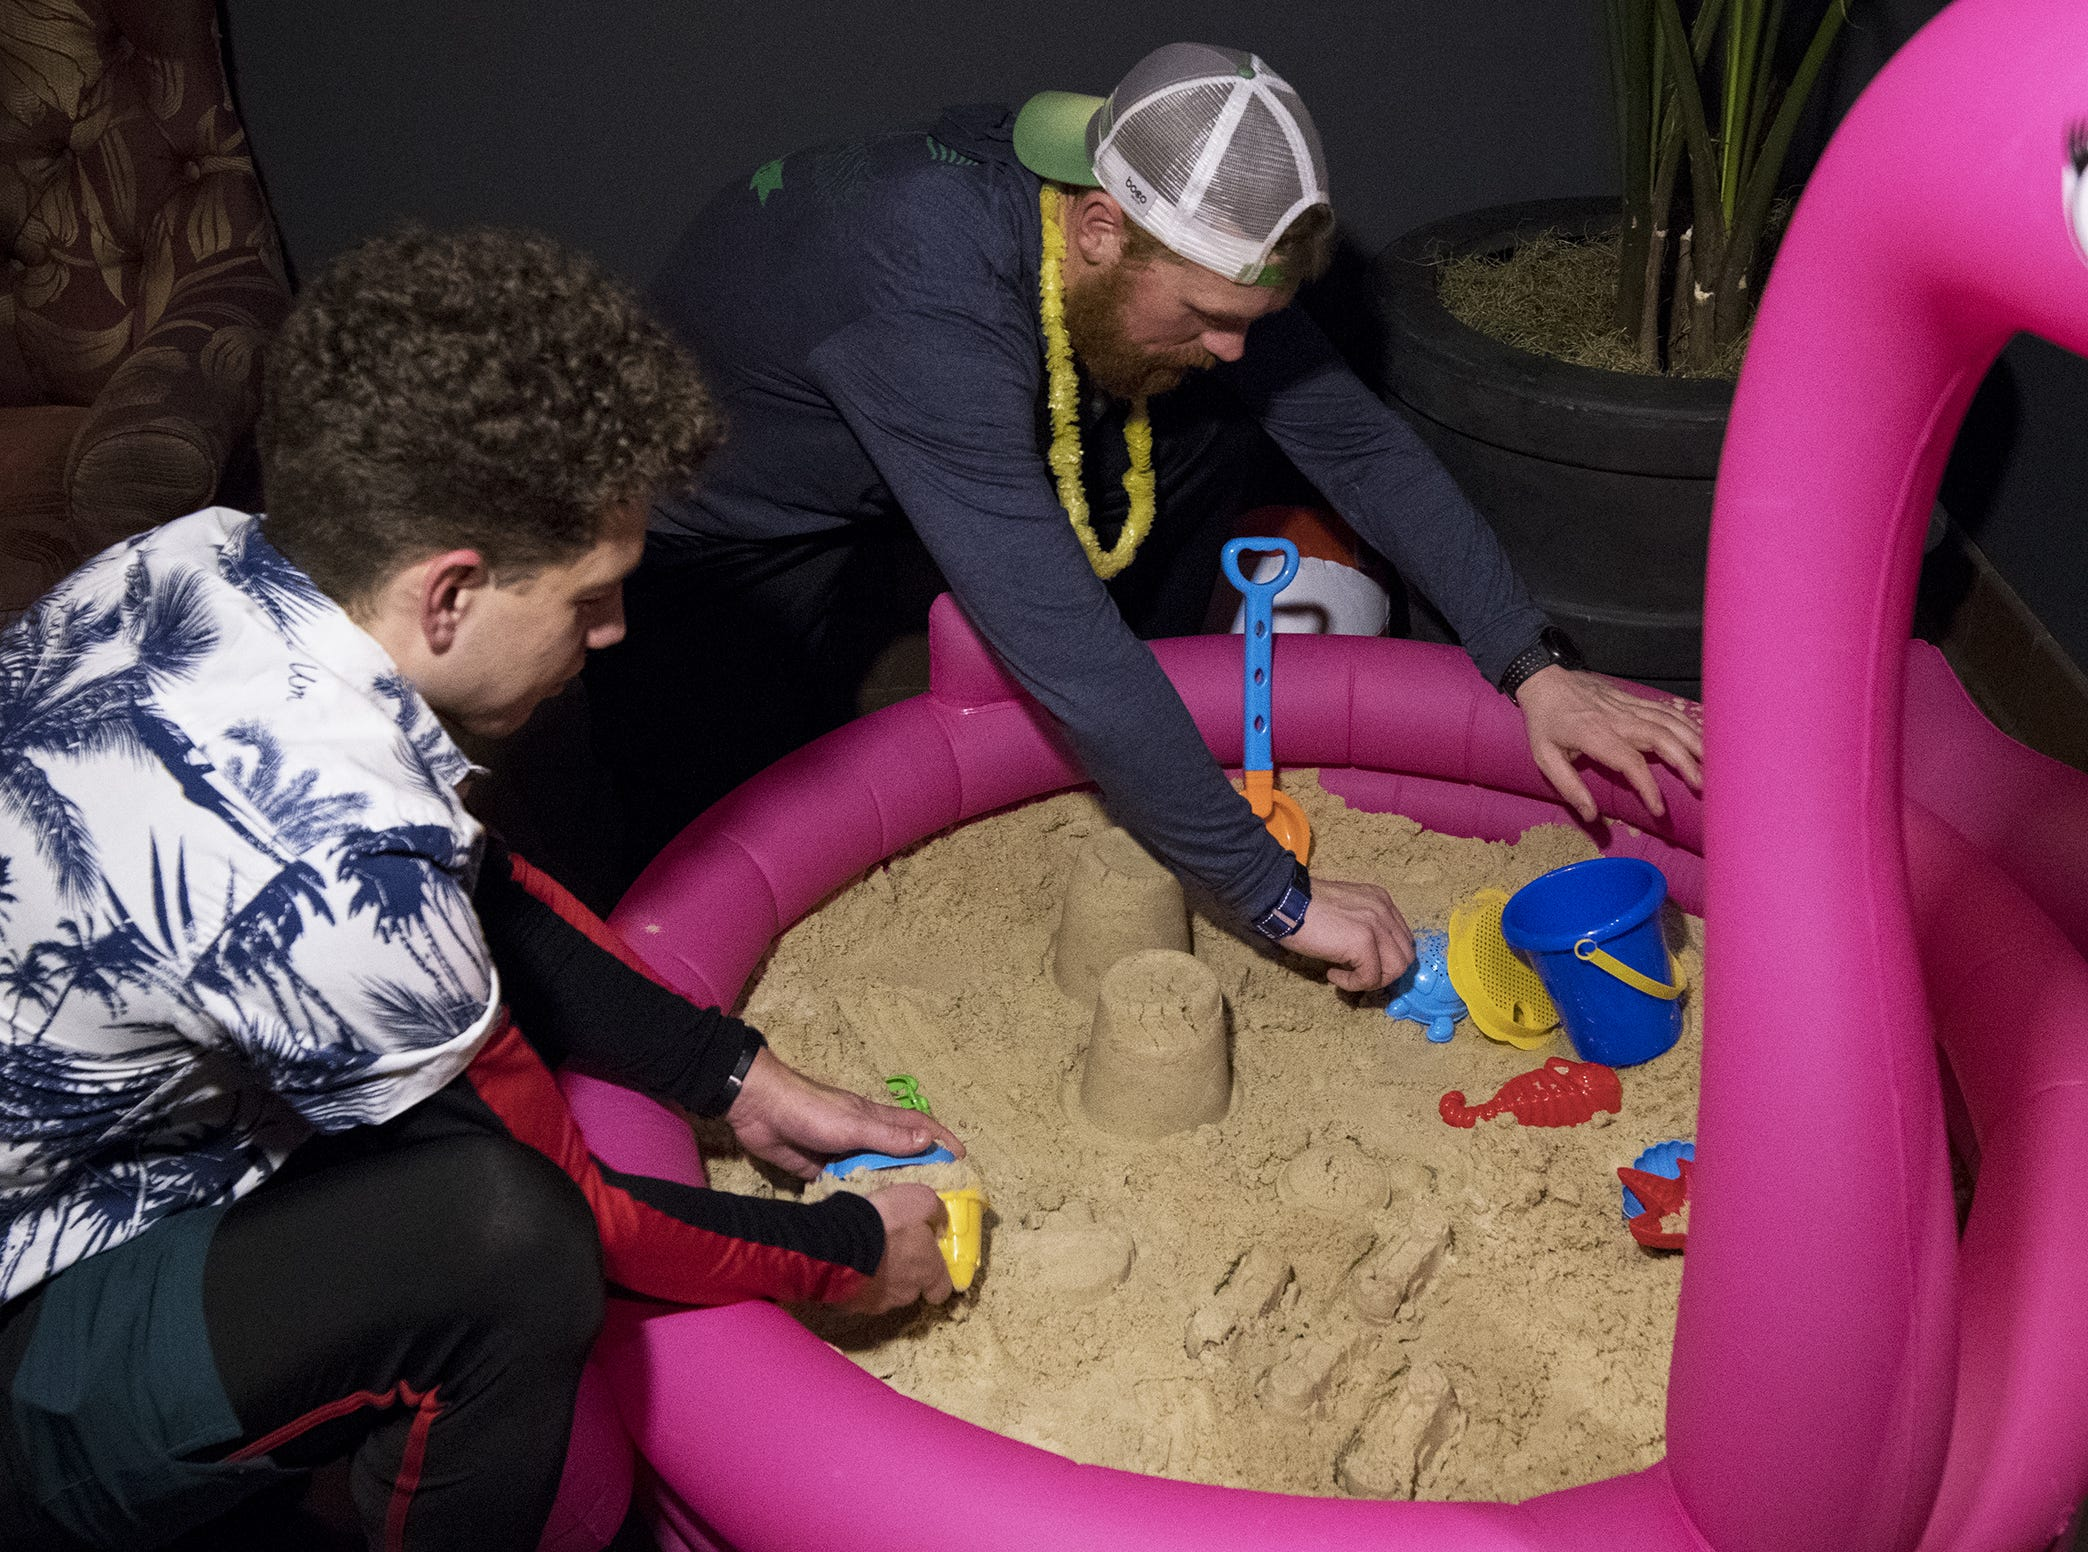 Stephen Abt and Chris Lorenz build sand castles in the 600 lbs of sand brought in for Beach Night at Taft's Ale House January 17, 2019 in Cincinnati, Ohio.